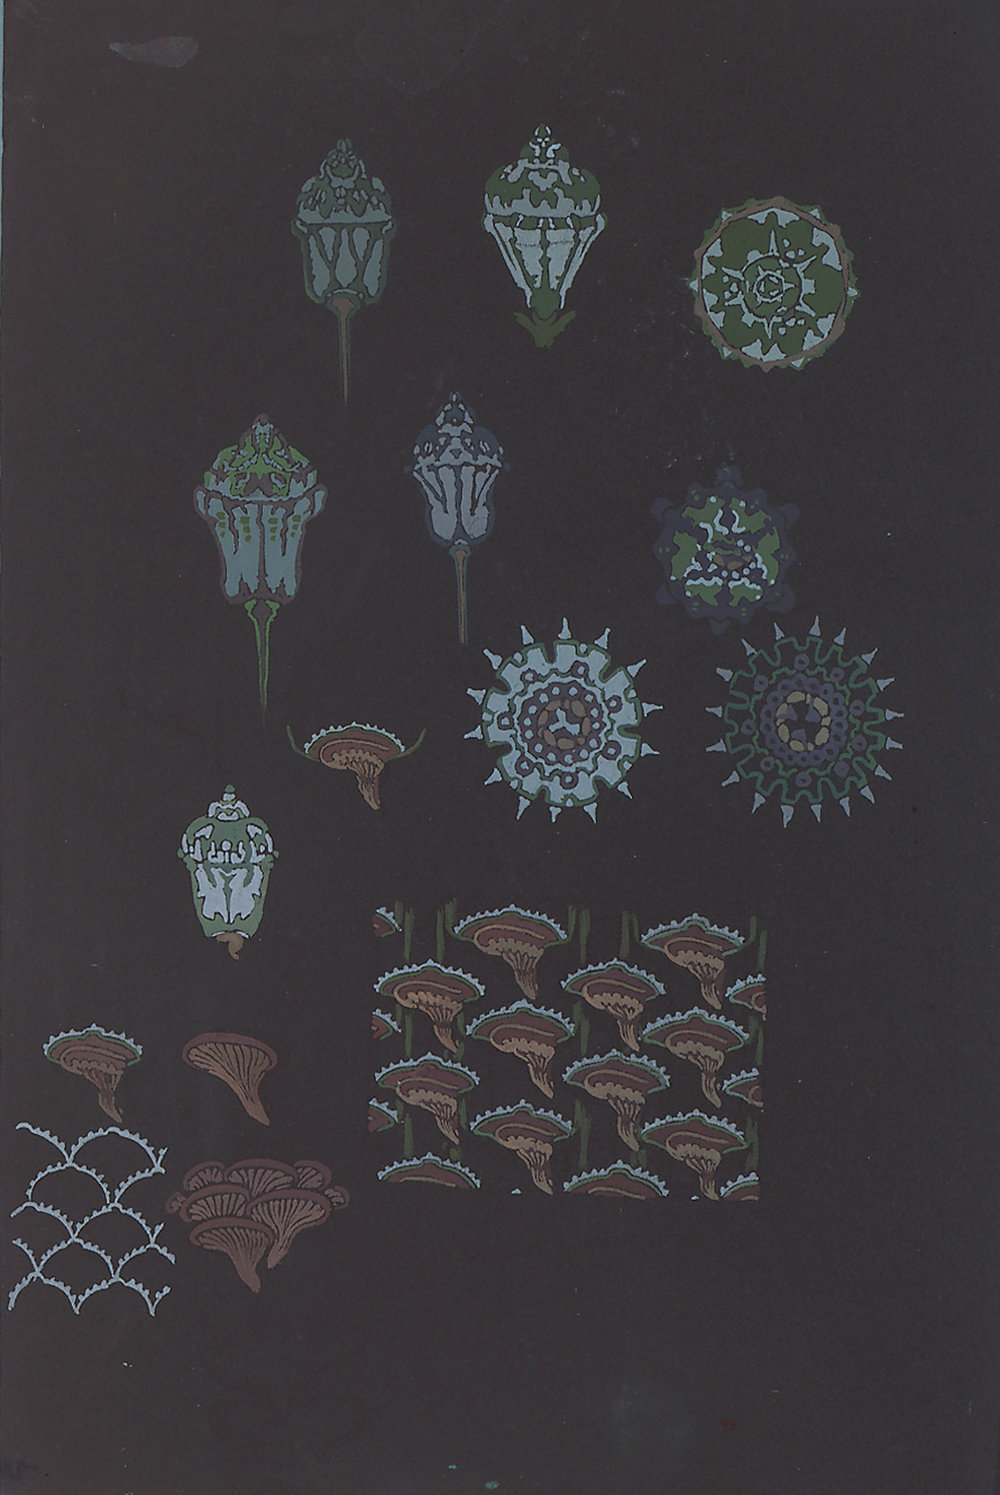 Anne-Marie Fontaine, French, d. 1940,  Design for Sèvres Porcelain,  c. 1930, gouache, 21 x 14 1/2""